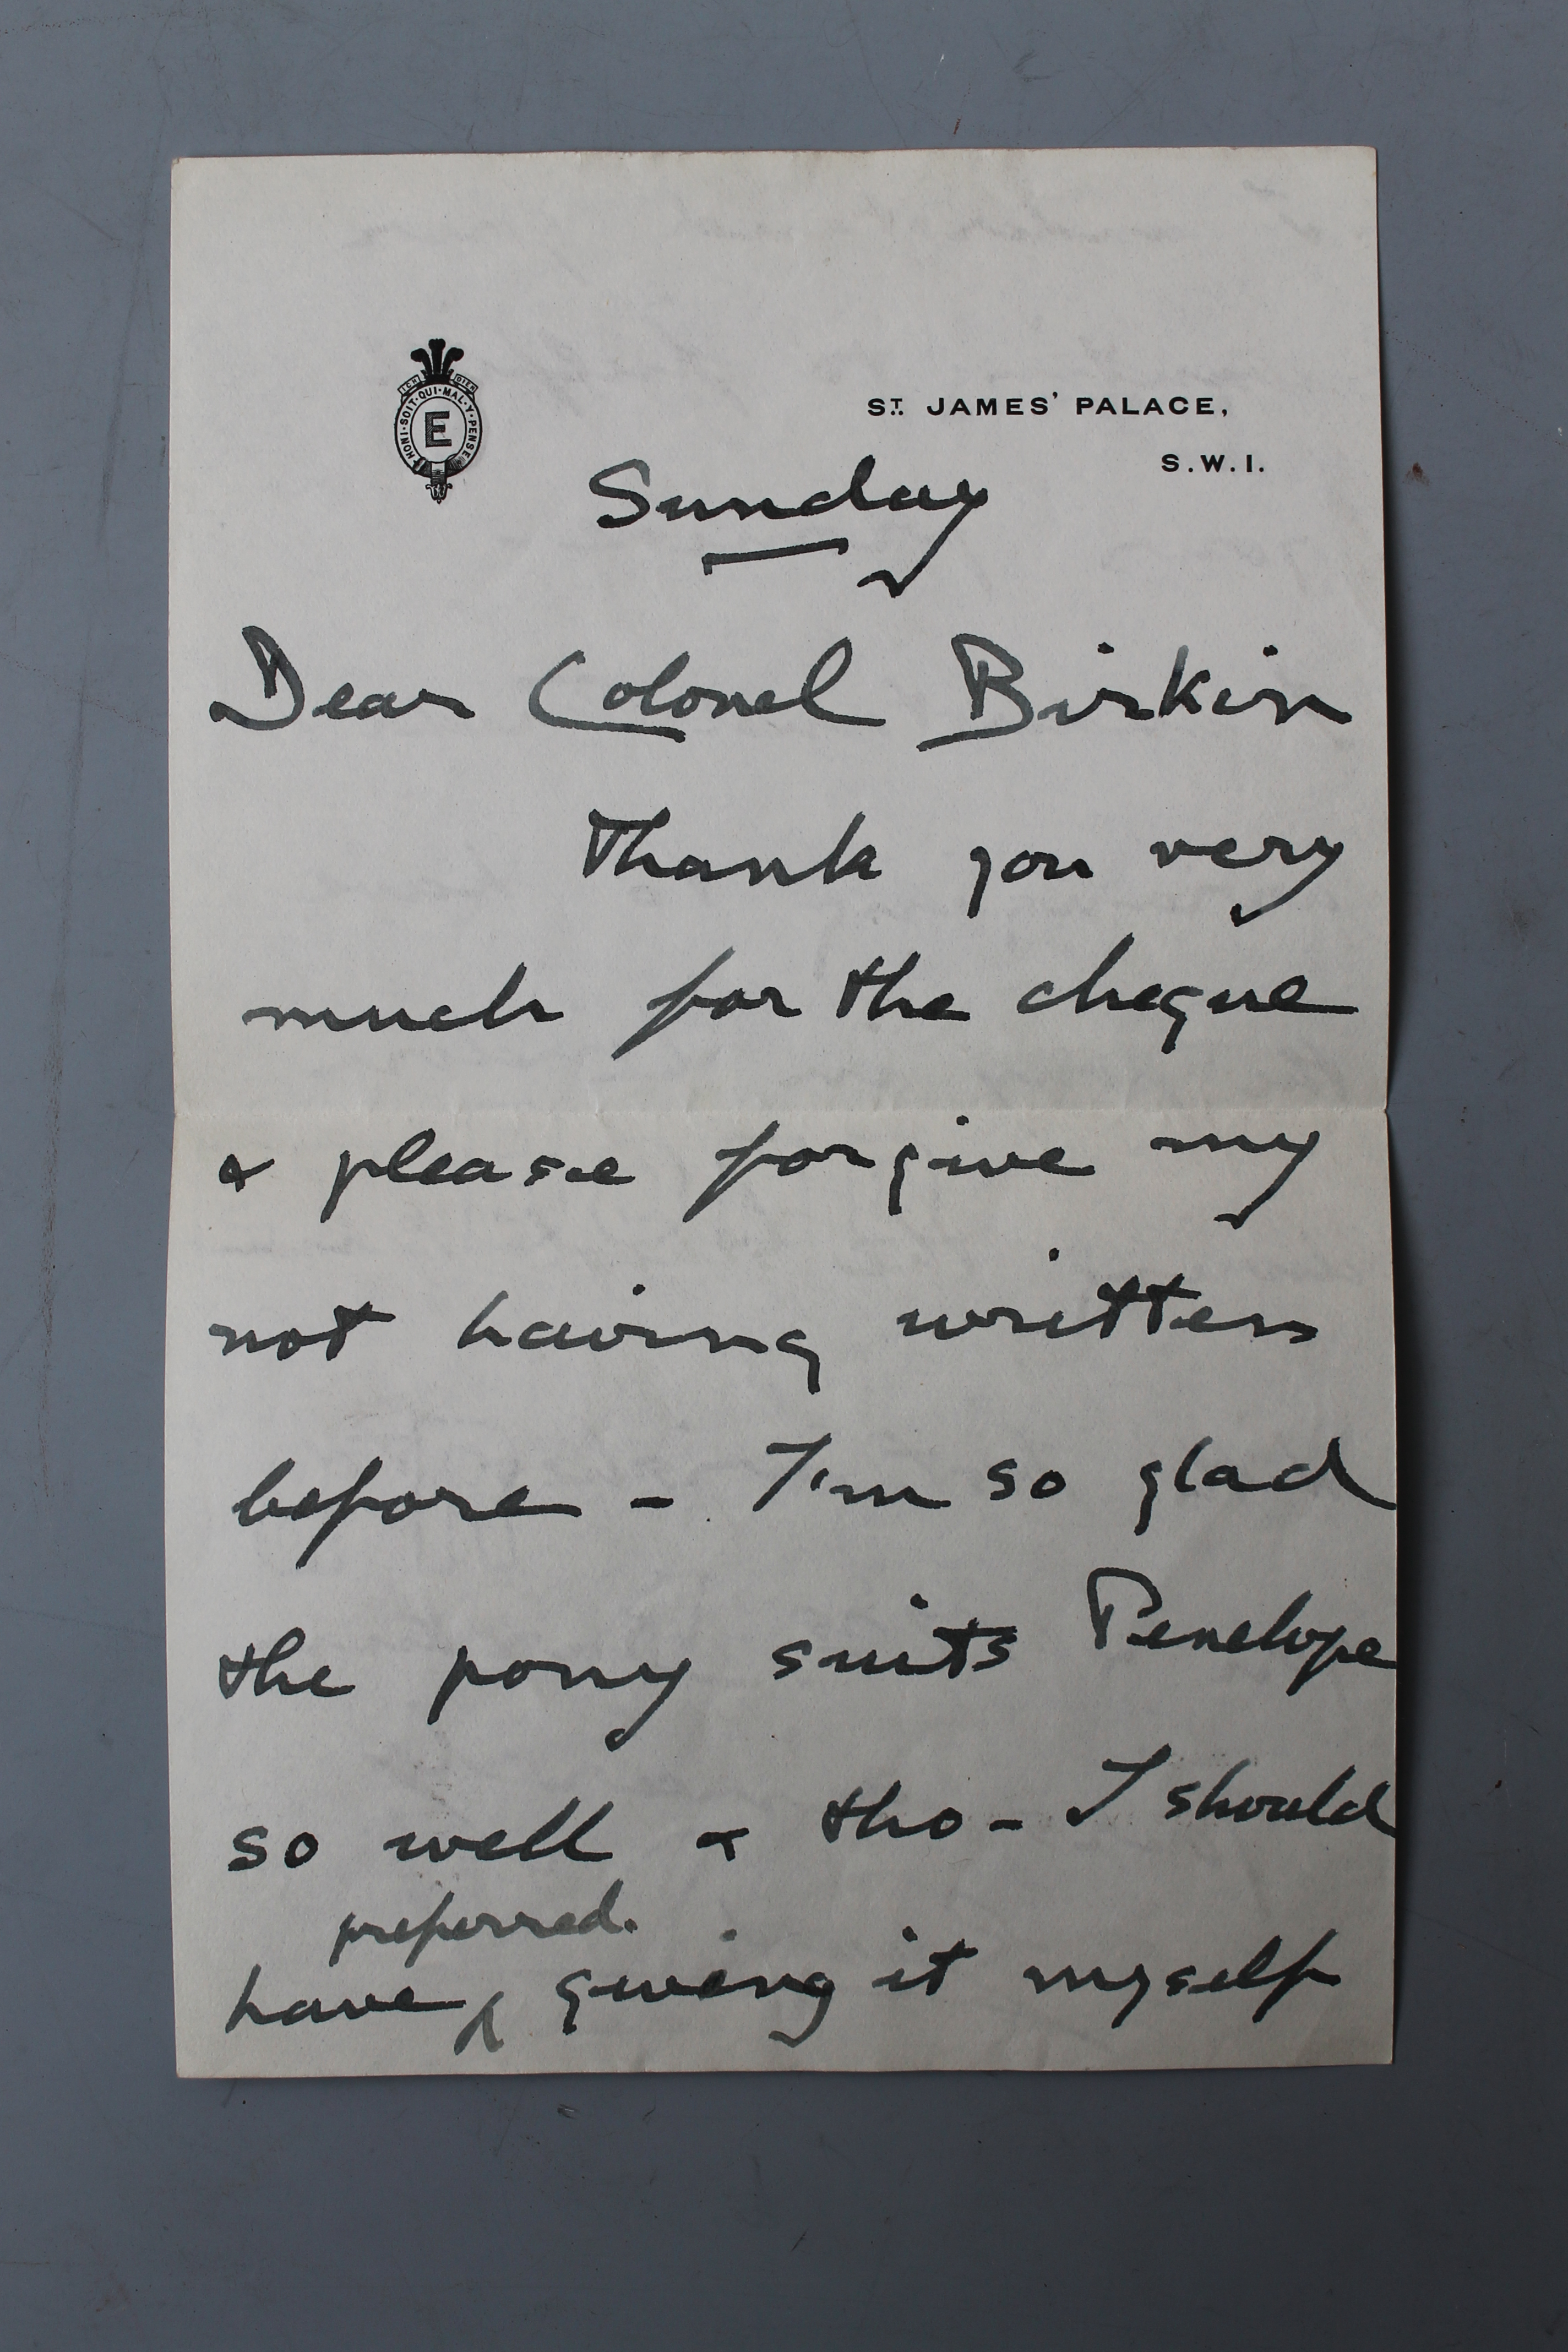 Royal letter from Edward VIII